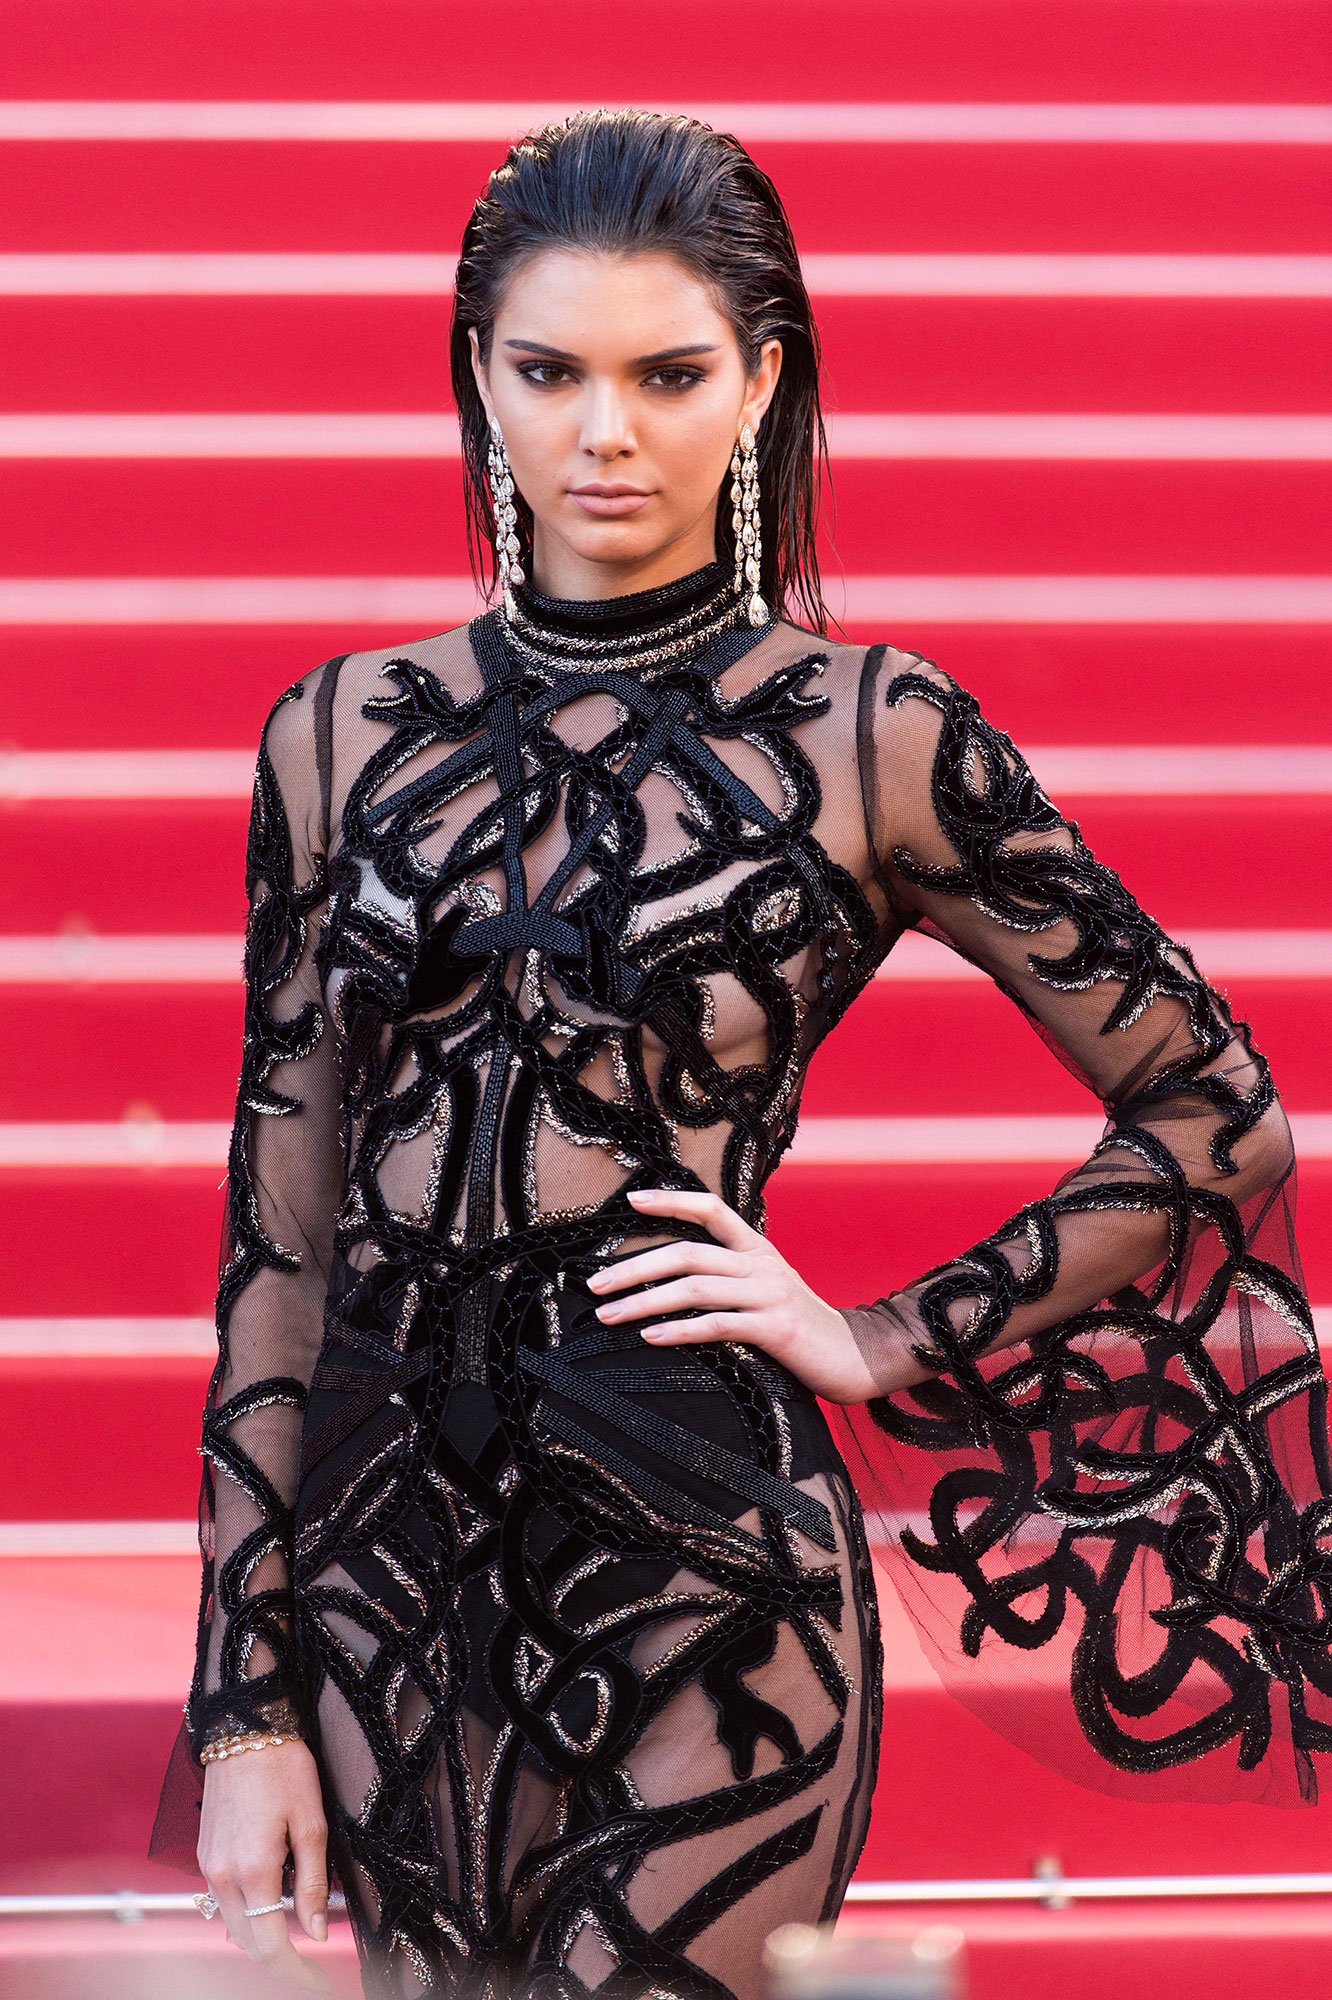 Kendall Jenner through the years - The reality star exuded glamour in a daring transparent dress at the Cannes premiere of From the Land of the Moon (Mal de Pierres) in 2016.